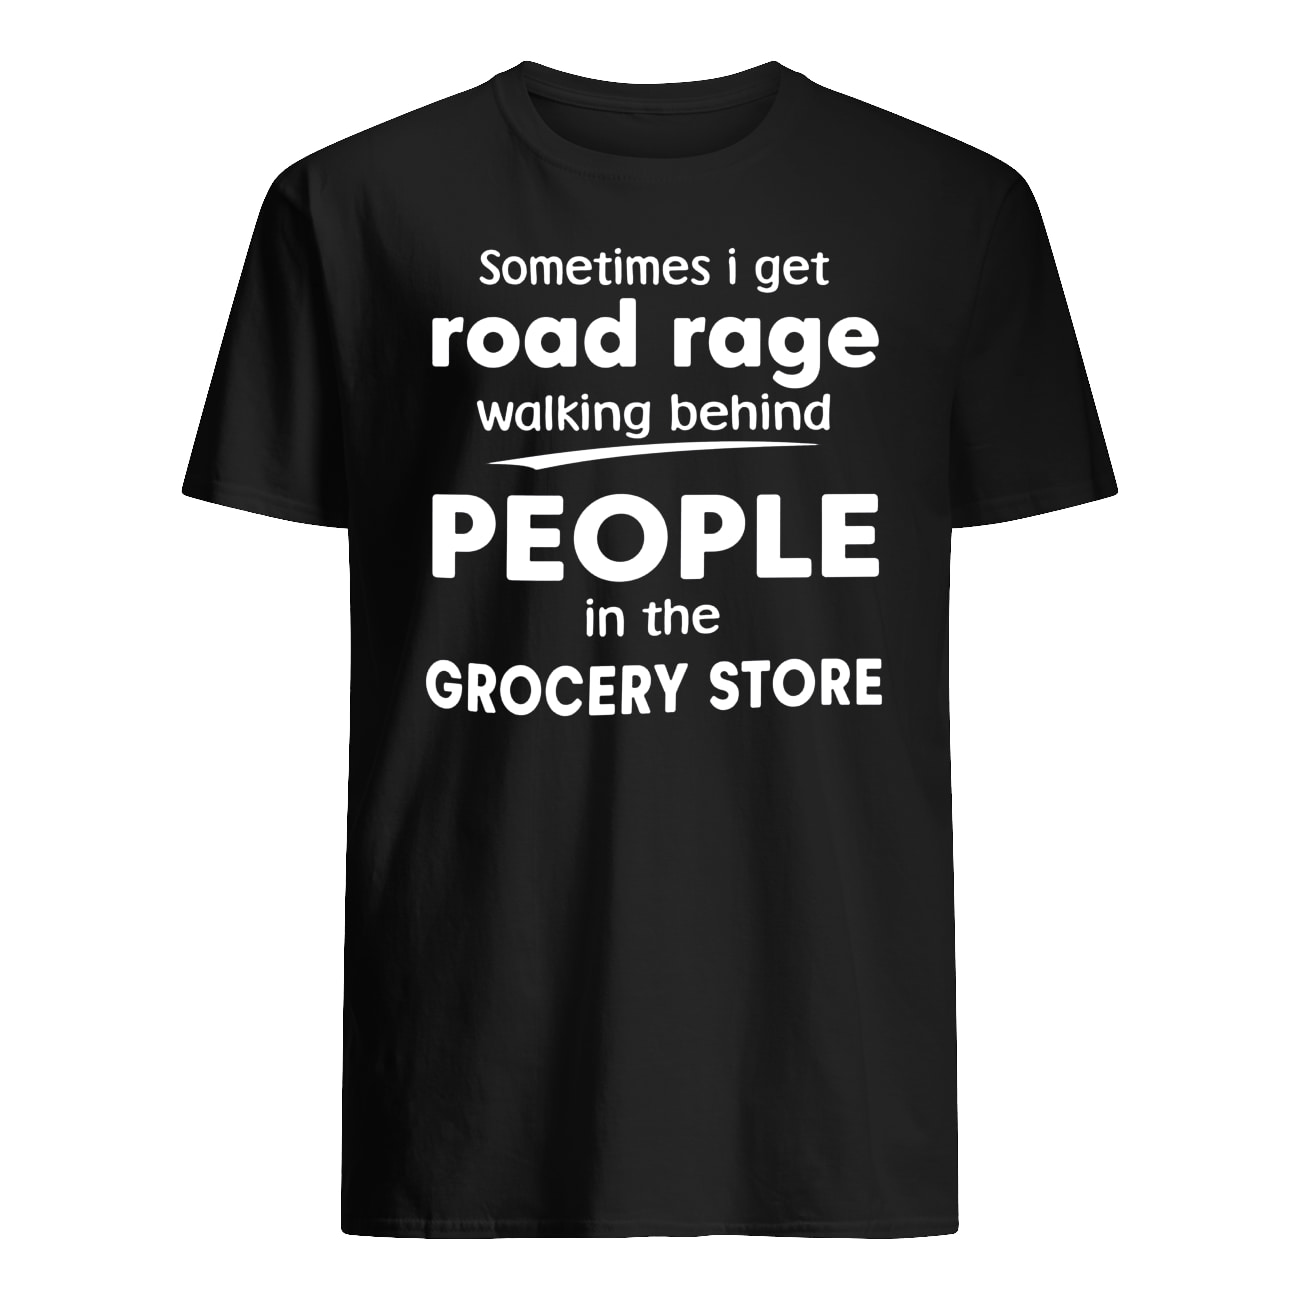 Sometimes I get road rage walking behind people in the grocery store mens shirt